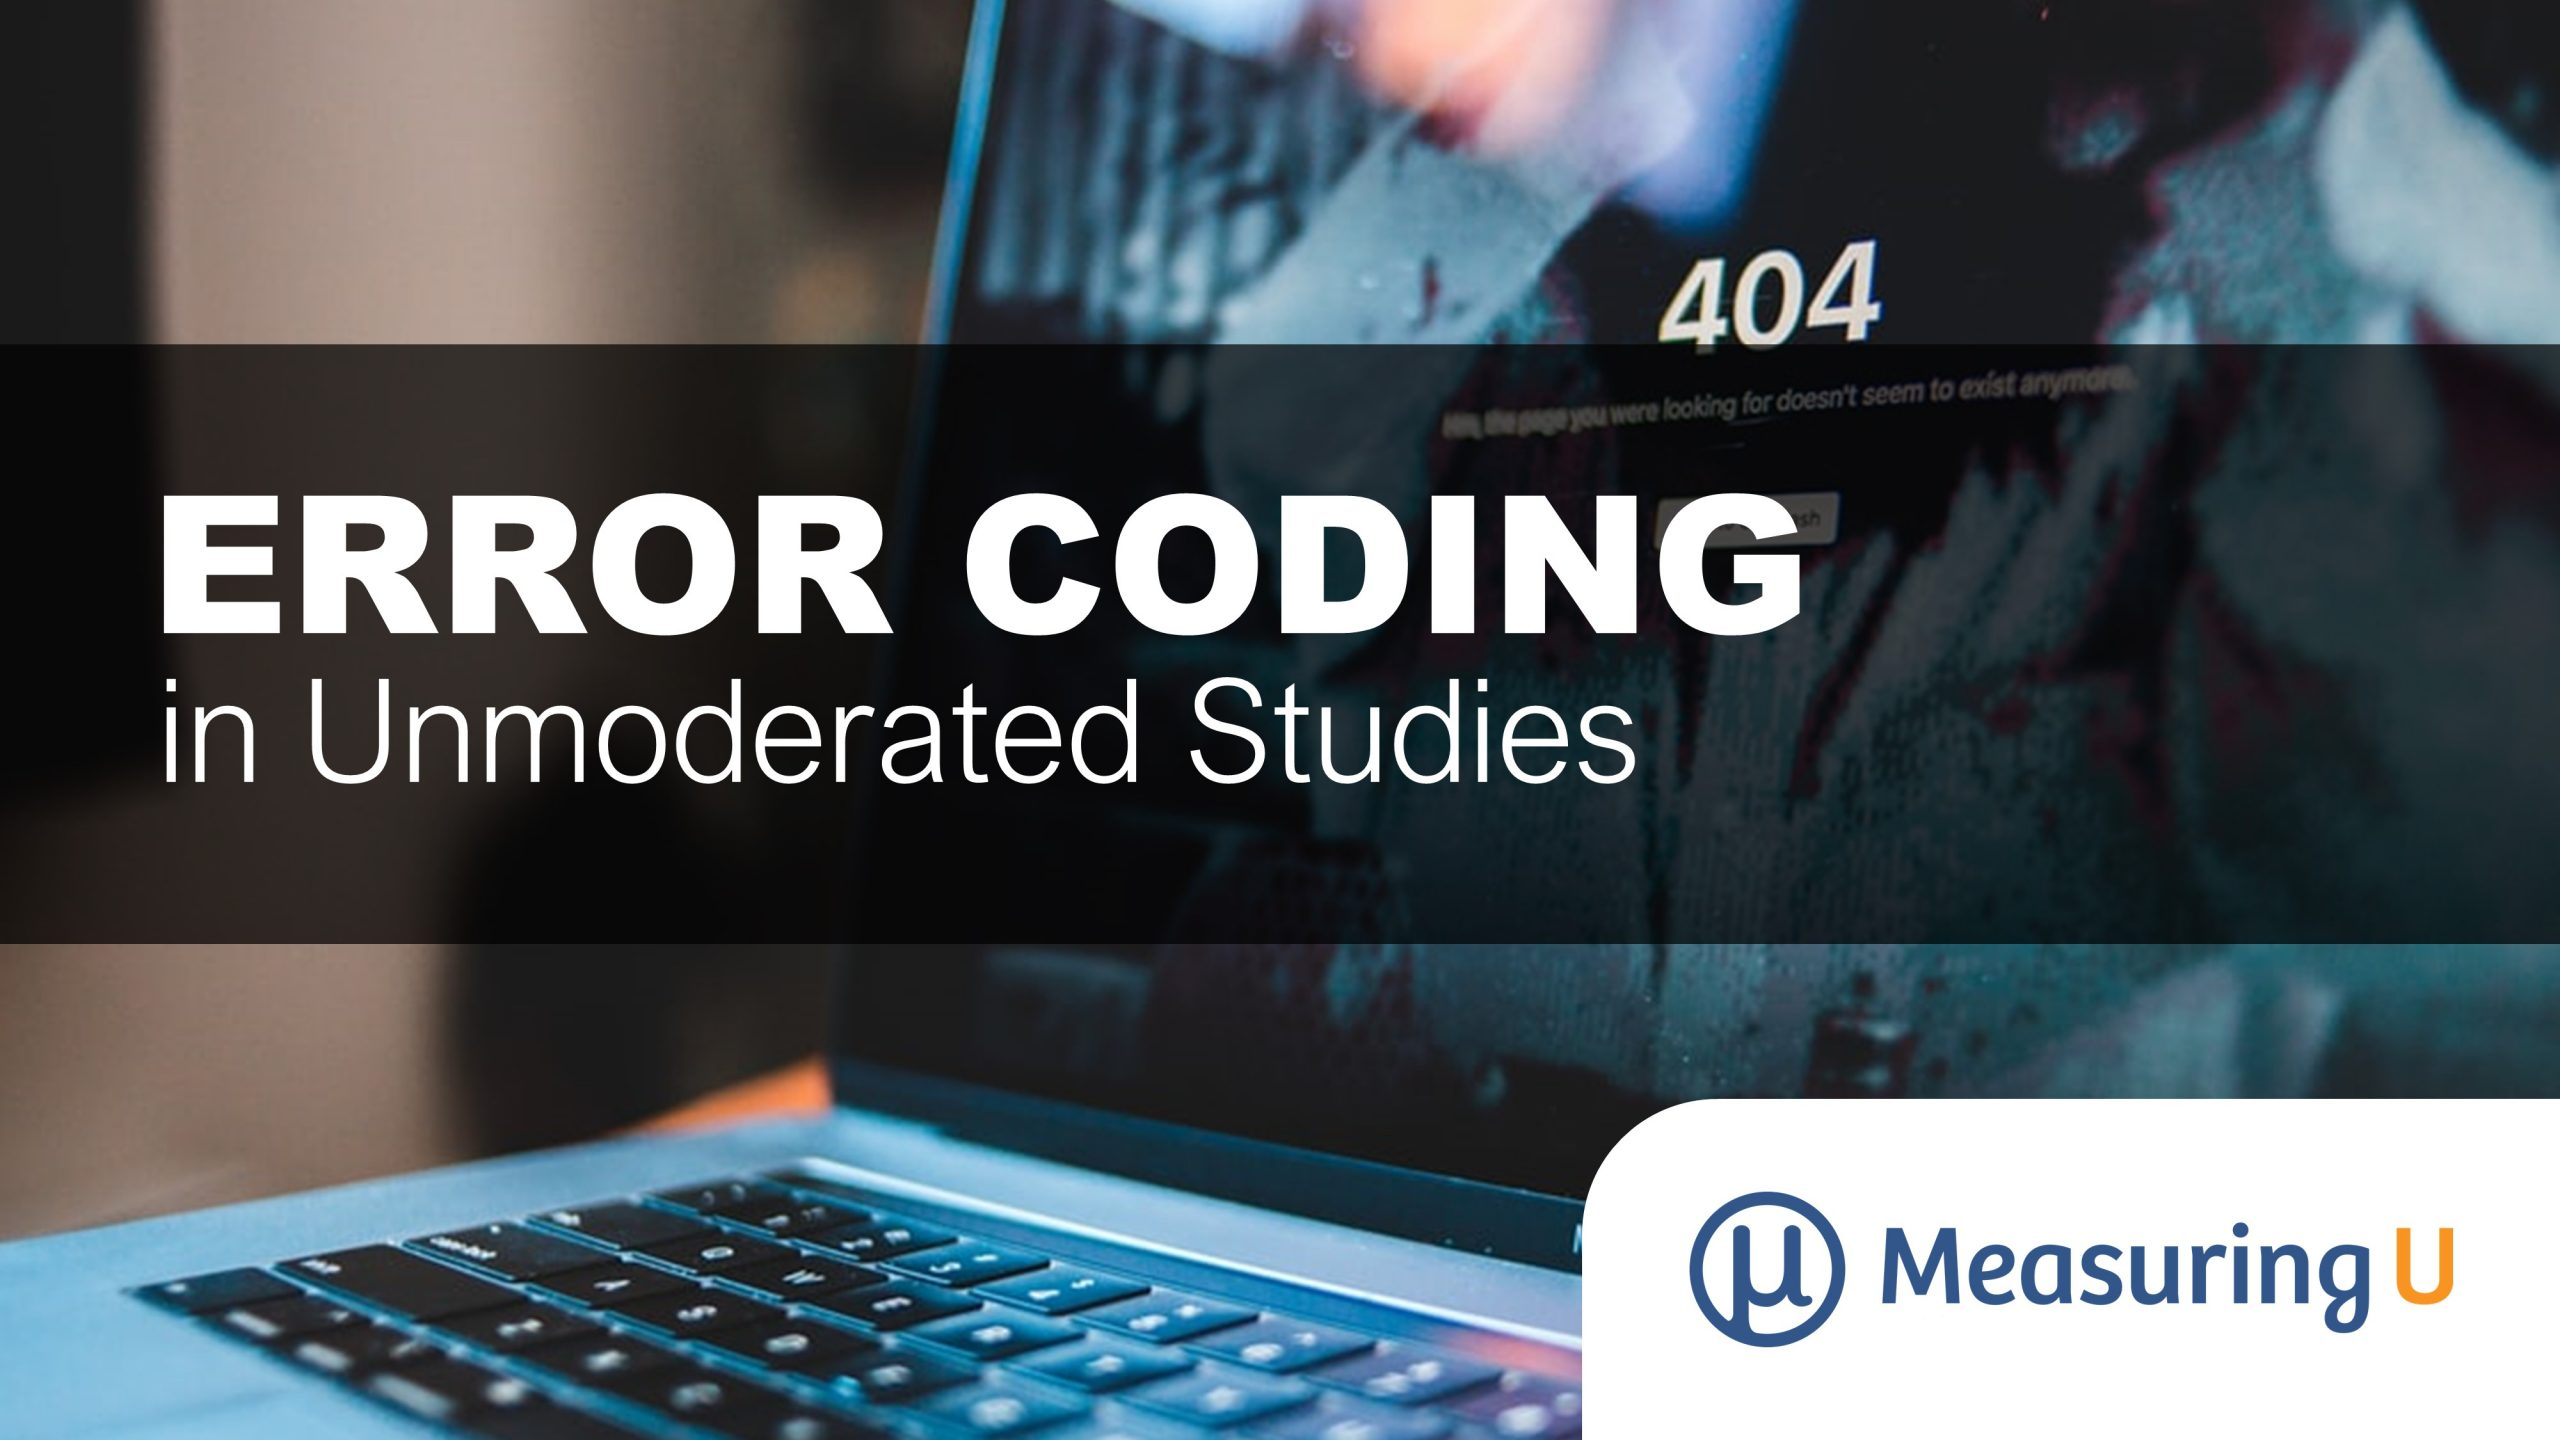 How to Code Errors in Unmoderated Studies